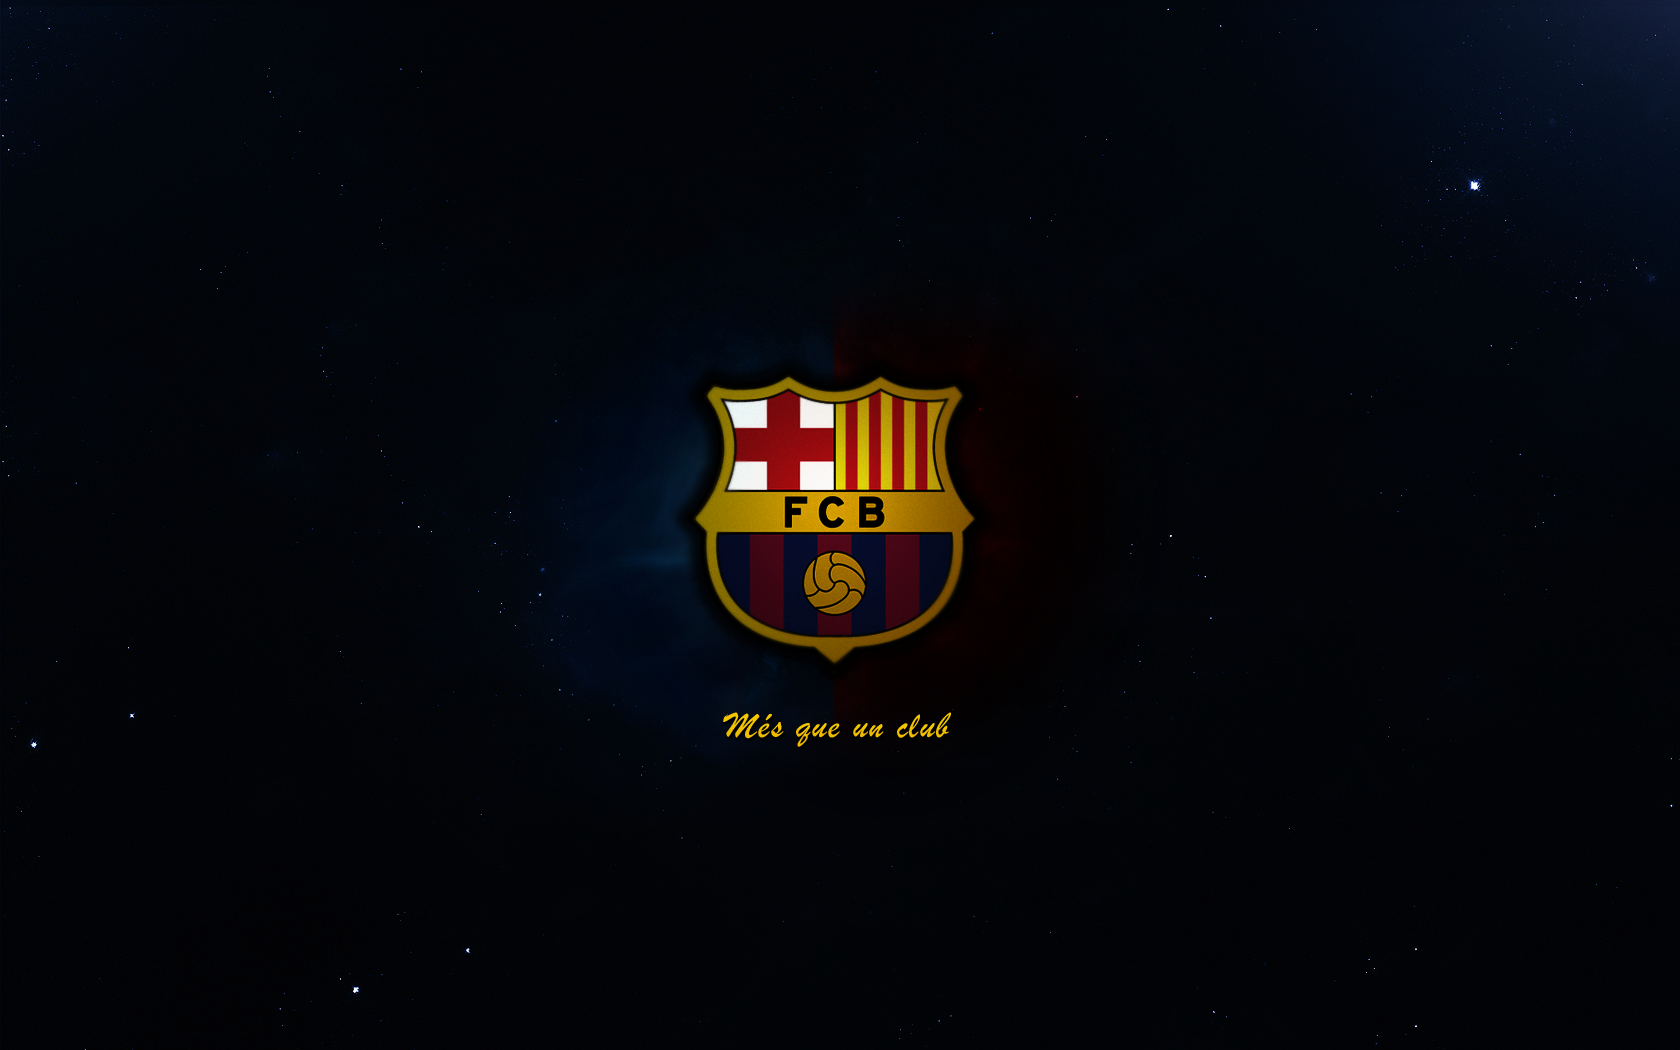 Fondos De Pantalla Del Fútbol Club Barcelona Wallpapers: Muchos Wallpapers FC Barcelona [HD] !!